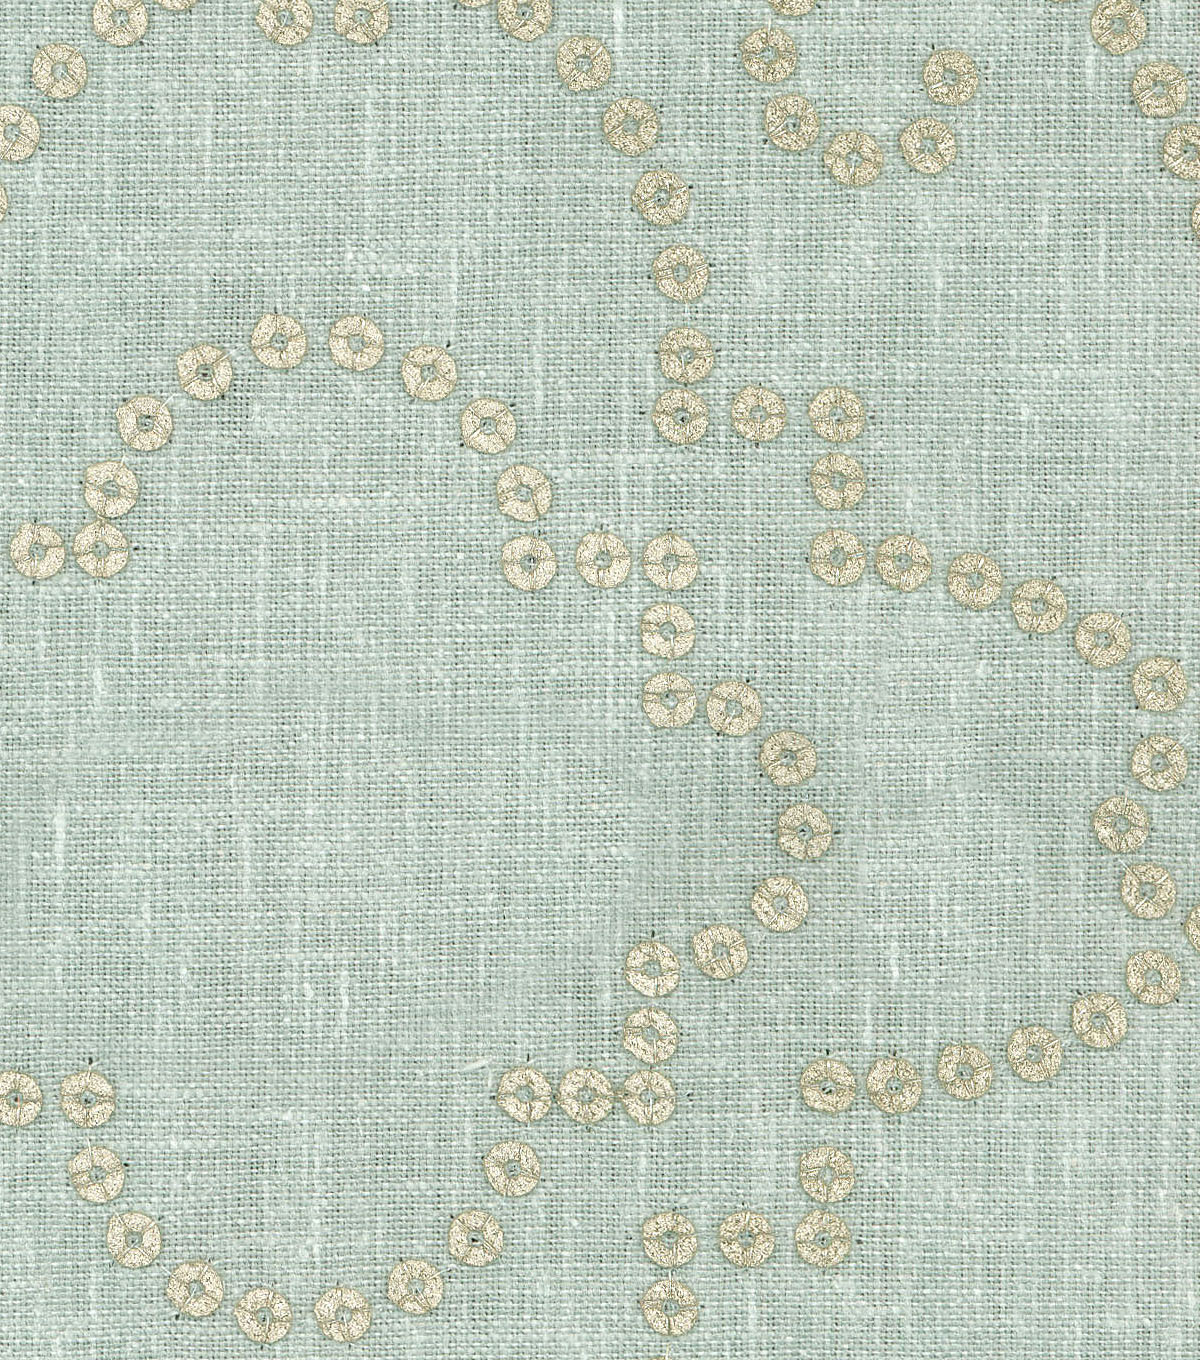 Dena Designs Upholstery Fabric 13x13\u0022 Swatch-Wow Factor Emb Moonstone